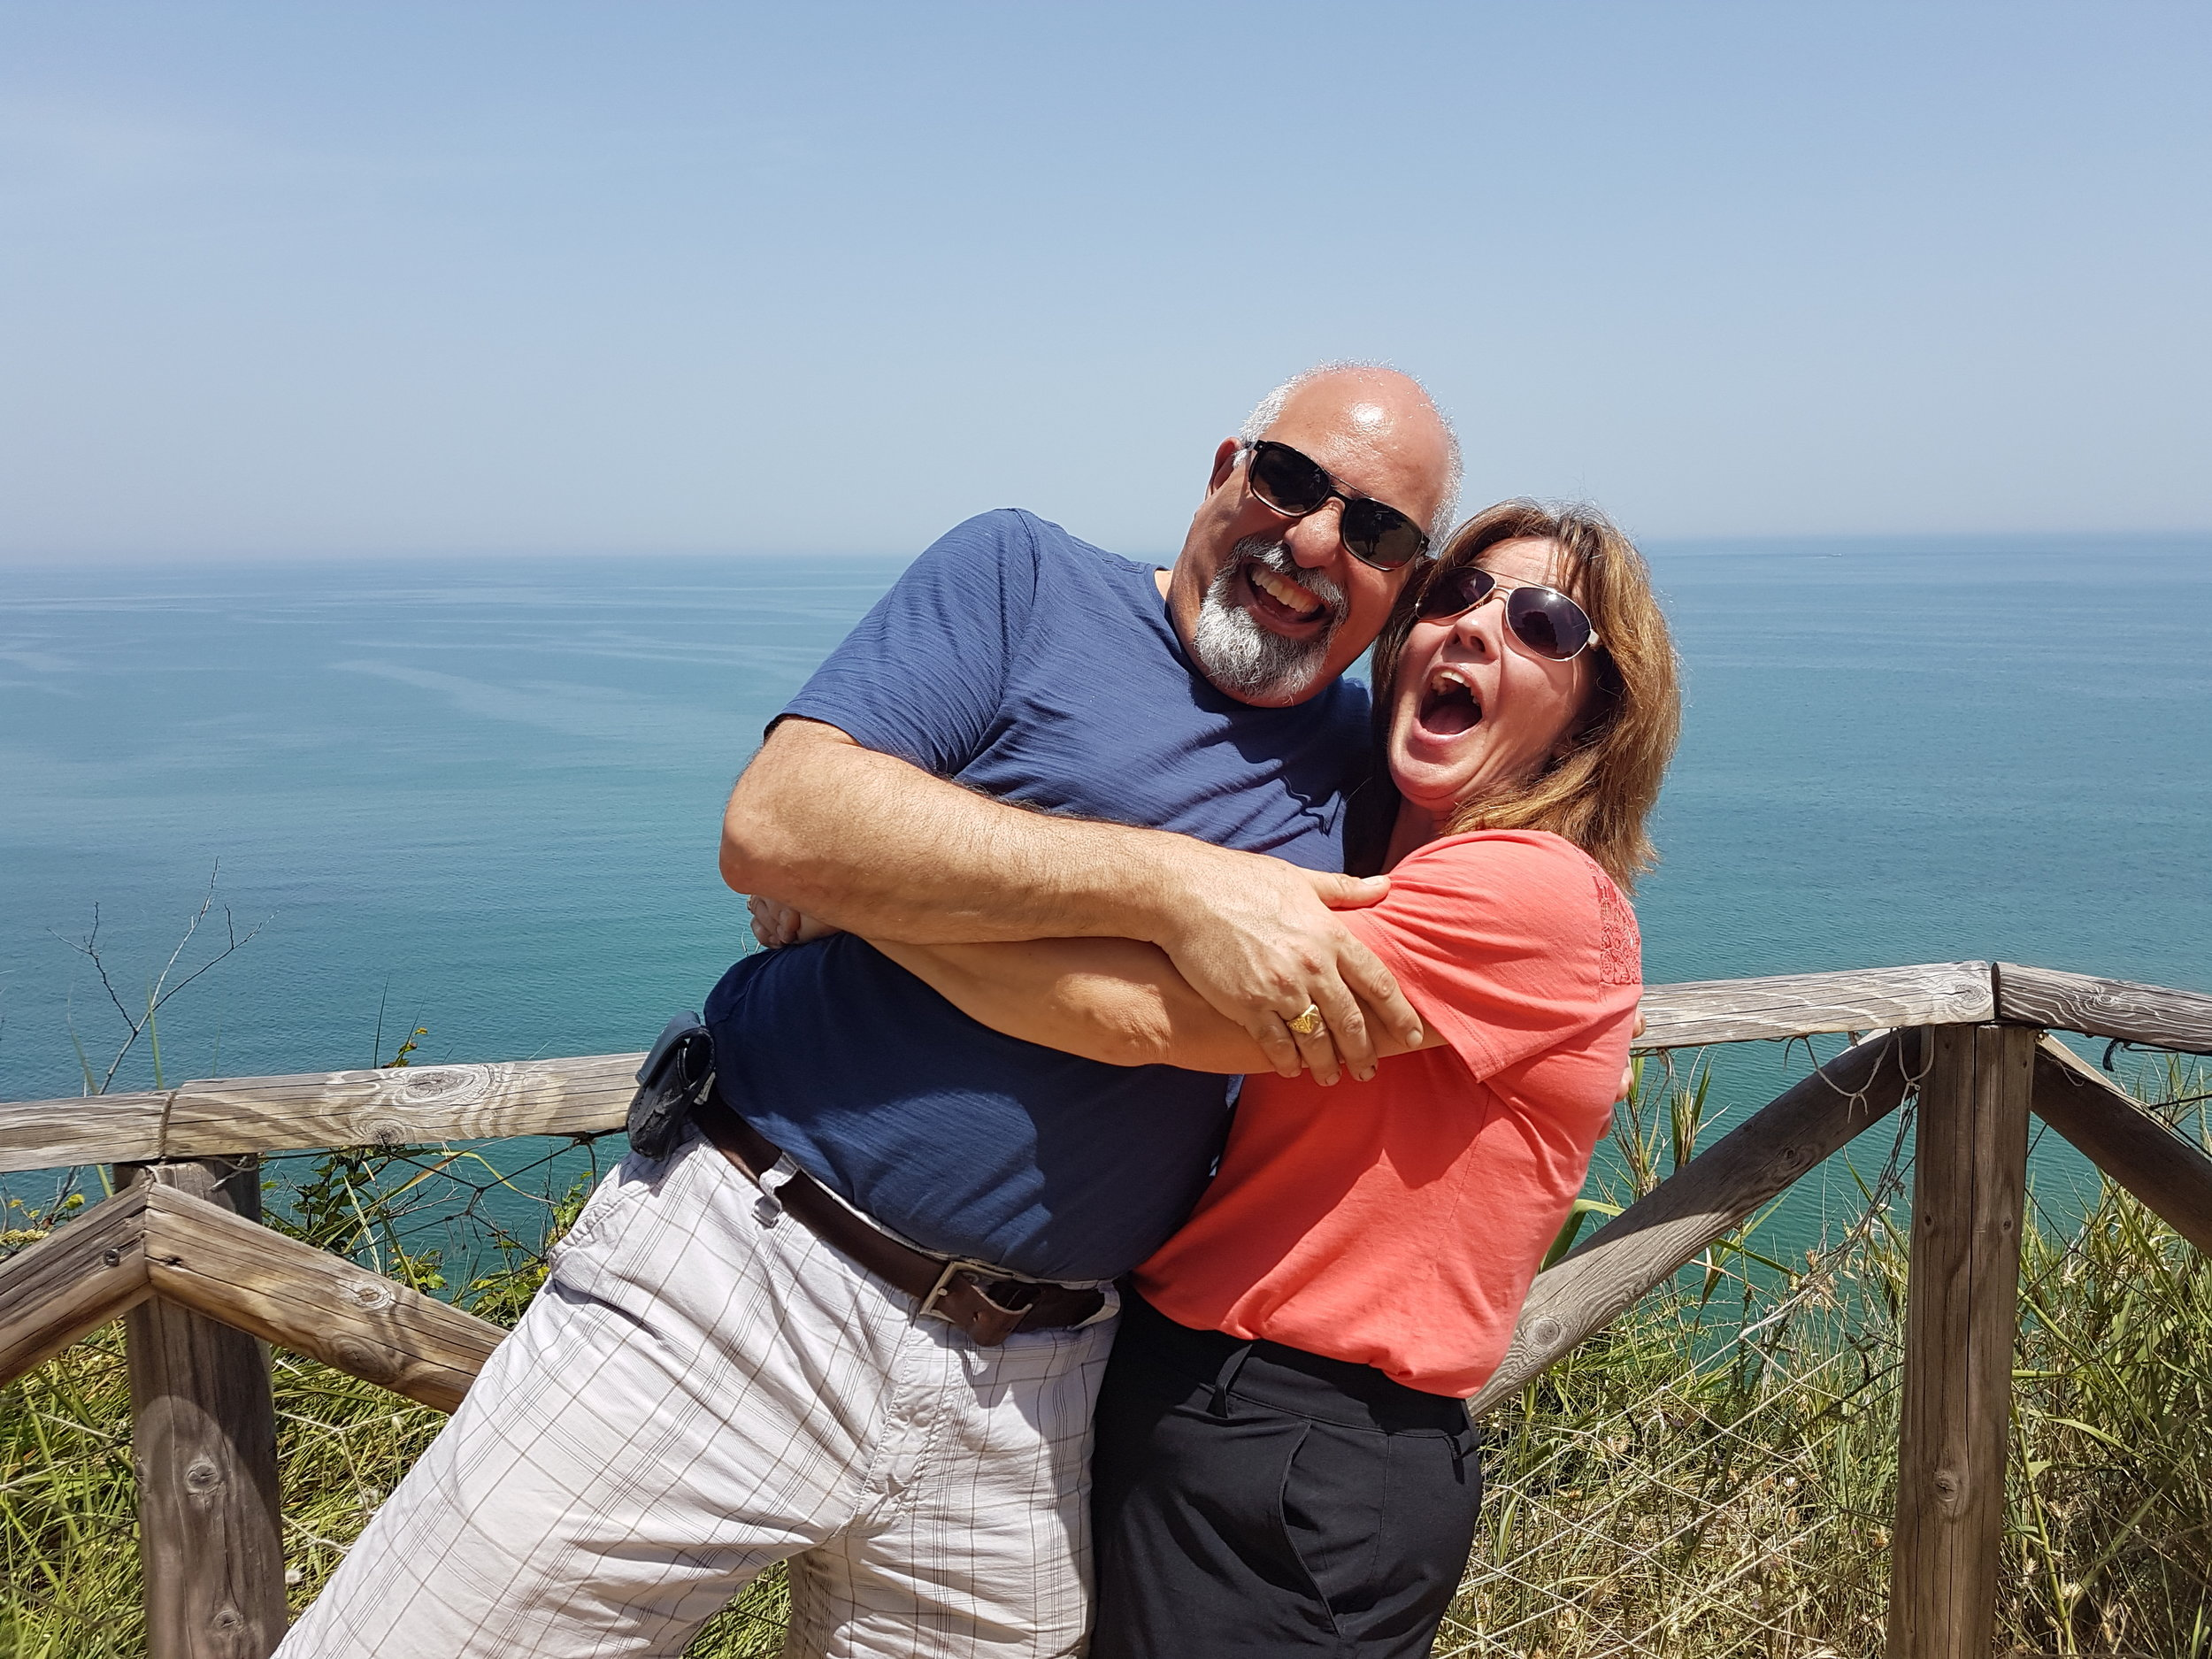 We were encouraged by a number of friends to go to Amazing Abruzzo Tours for a great trip. We wondered what the fuss was all about. After checking the website and reviews and then speaking to more friends it came apparent that we just had to go. After checking dates with Jake, we booked a year in advance - never did that before! A lot can happen in a year, but the date came up as fast as we booked it. Lo and behold we found ourselves at the Rome airport and Jake looking for us while we're drinking our first Americano ... and the rest is history, literally. We never looked back as our dreams came true and amazing trip memories began day one. Each day started the same and ended the same, but something was happening beyond our wildest expectations. The first day was absolutely amazing and as the week progressed each day got better with the crescendo on day six - we were actually pinching ourselves to see if this was real. This sounds all quite exaggerated however the other couples, who we met for the first time, were saying the same things. All of us were experienced travelers and yet we were all beginning to experience a different sort of holiday. The only way I can express it is that we weren't treated or feeling like tourists but as locals, even better as family. We can't say enough about the staff, in order of appearance: Eva, Cesidia, Luca, Giuseppe, Angela, Orazio, Sabrina and Nora - and of course, our wonderful and gracious hosts, Jake and Lisa. The villa, rooms, food, wine, tours impecable! Yes, this is a tall order to maintain but here's the thing, we all talked about coming back. Now I haven't spoken of the details of the things we saw and experienced but that's the best part of the journey - not knowing what to expect and then to be blown away each and every day. Put Amazing Abruzzo Tours on your bucket list, your must travel list, your things to do today list and come and see what the fuss is all about!! Thank you Jake and Lisa! Taffy and Susan Nahas